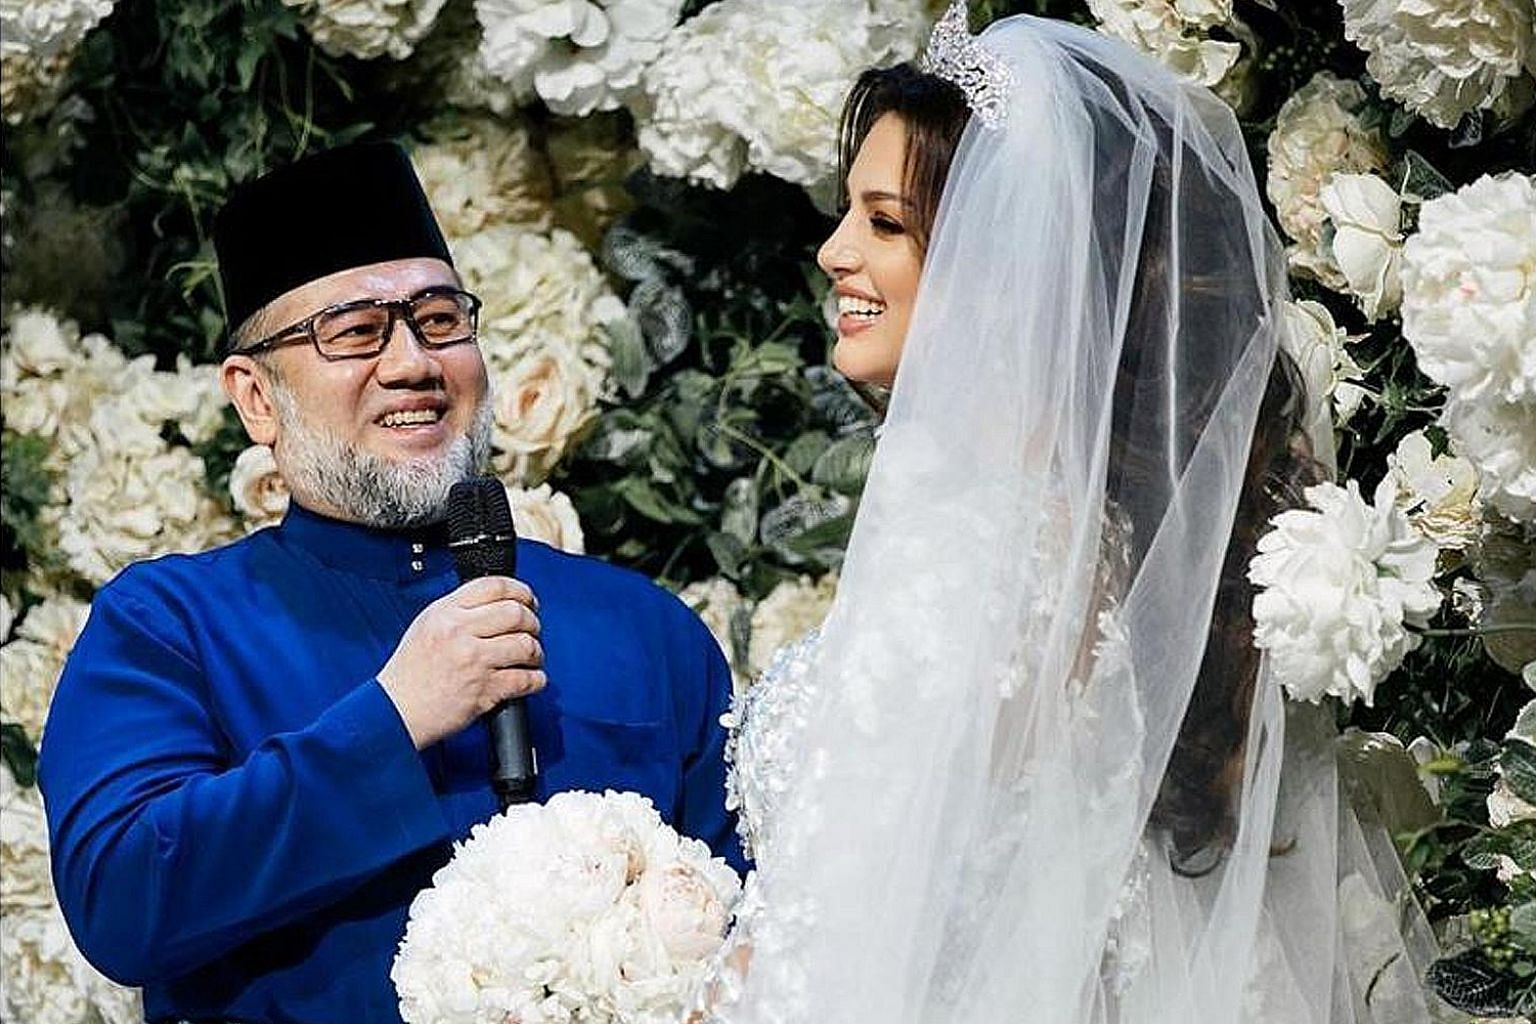 Sultan Muhammad V of Kelantan is said to have divorced Ms Oksana Voevodina on June 22, about a year after their surprise marriage in Moscow.